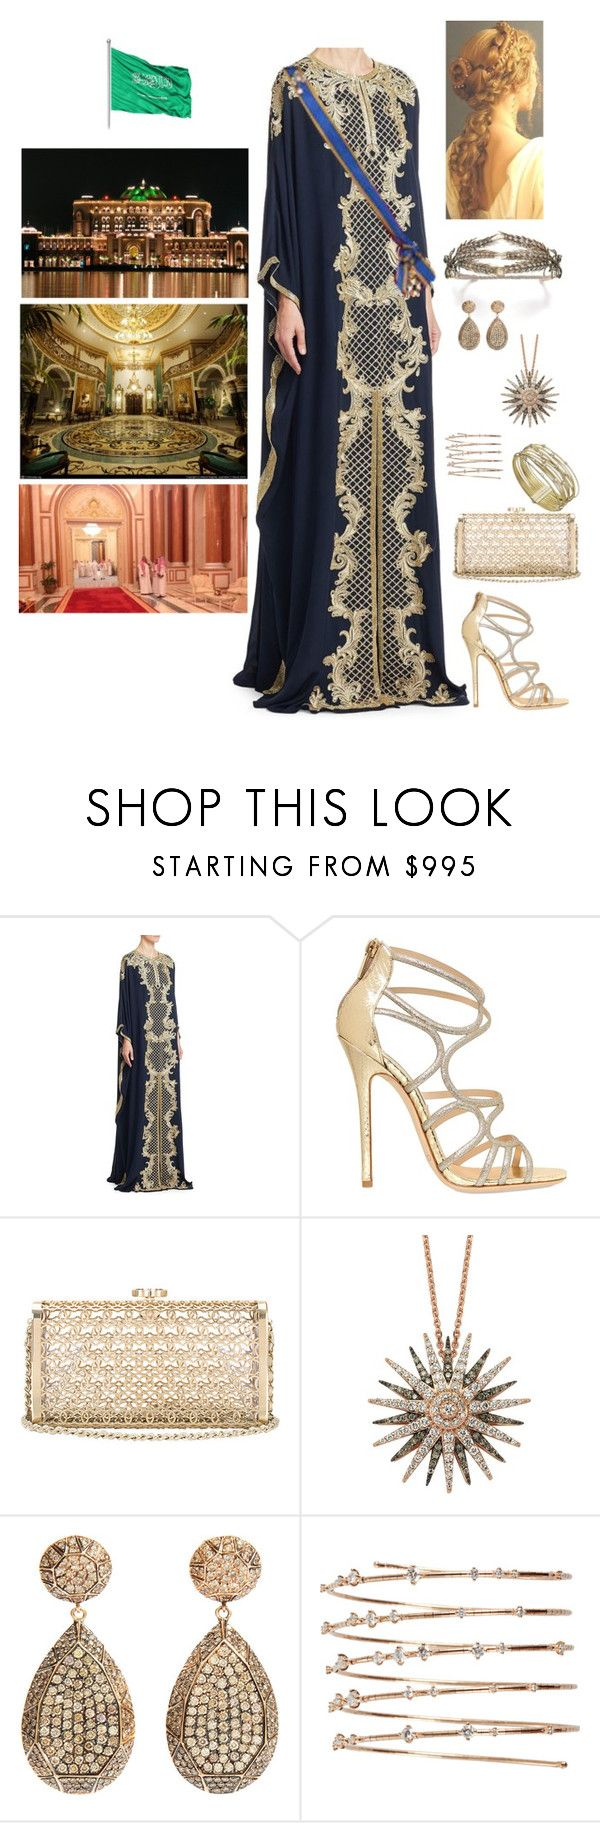 """""""King Nicolas and Queen Rose attend a State banquet in Saudi Arabia"""" by hm-queen-rose ❤ liked on Polyvore featuring Marchesa, Jimmy Choo, Bee Goddess, Ileana Makri, Mattia Cielo and Marco Bicego"""